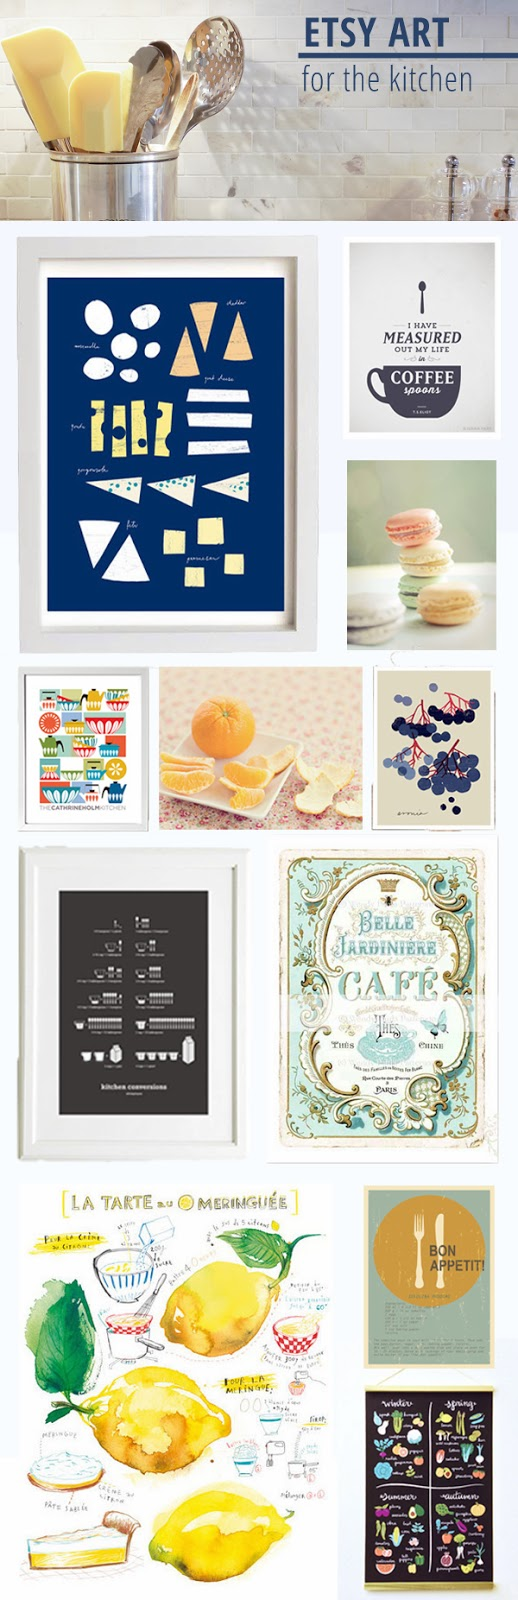 Etsy Art For The Kitchen   Rambling Renovators